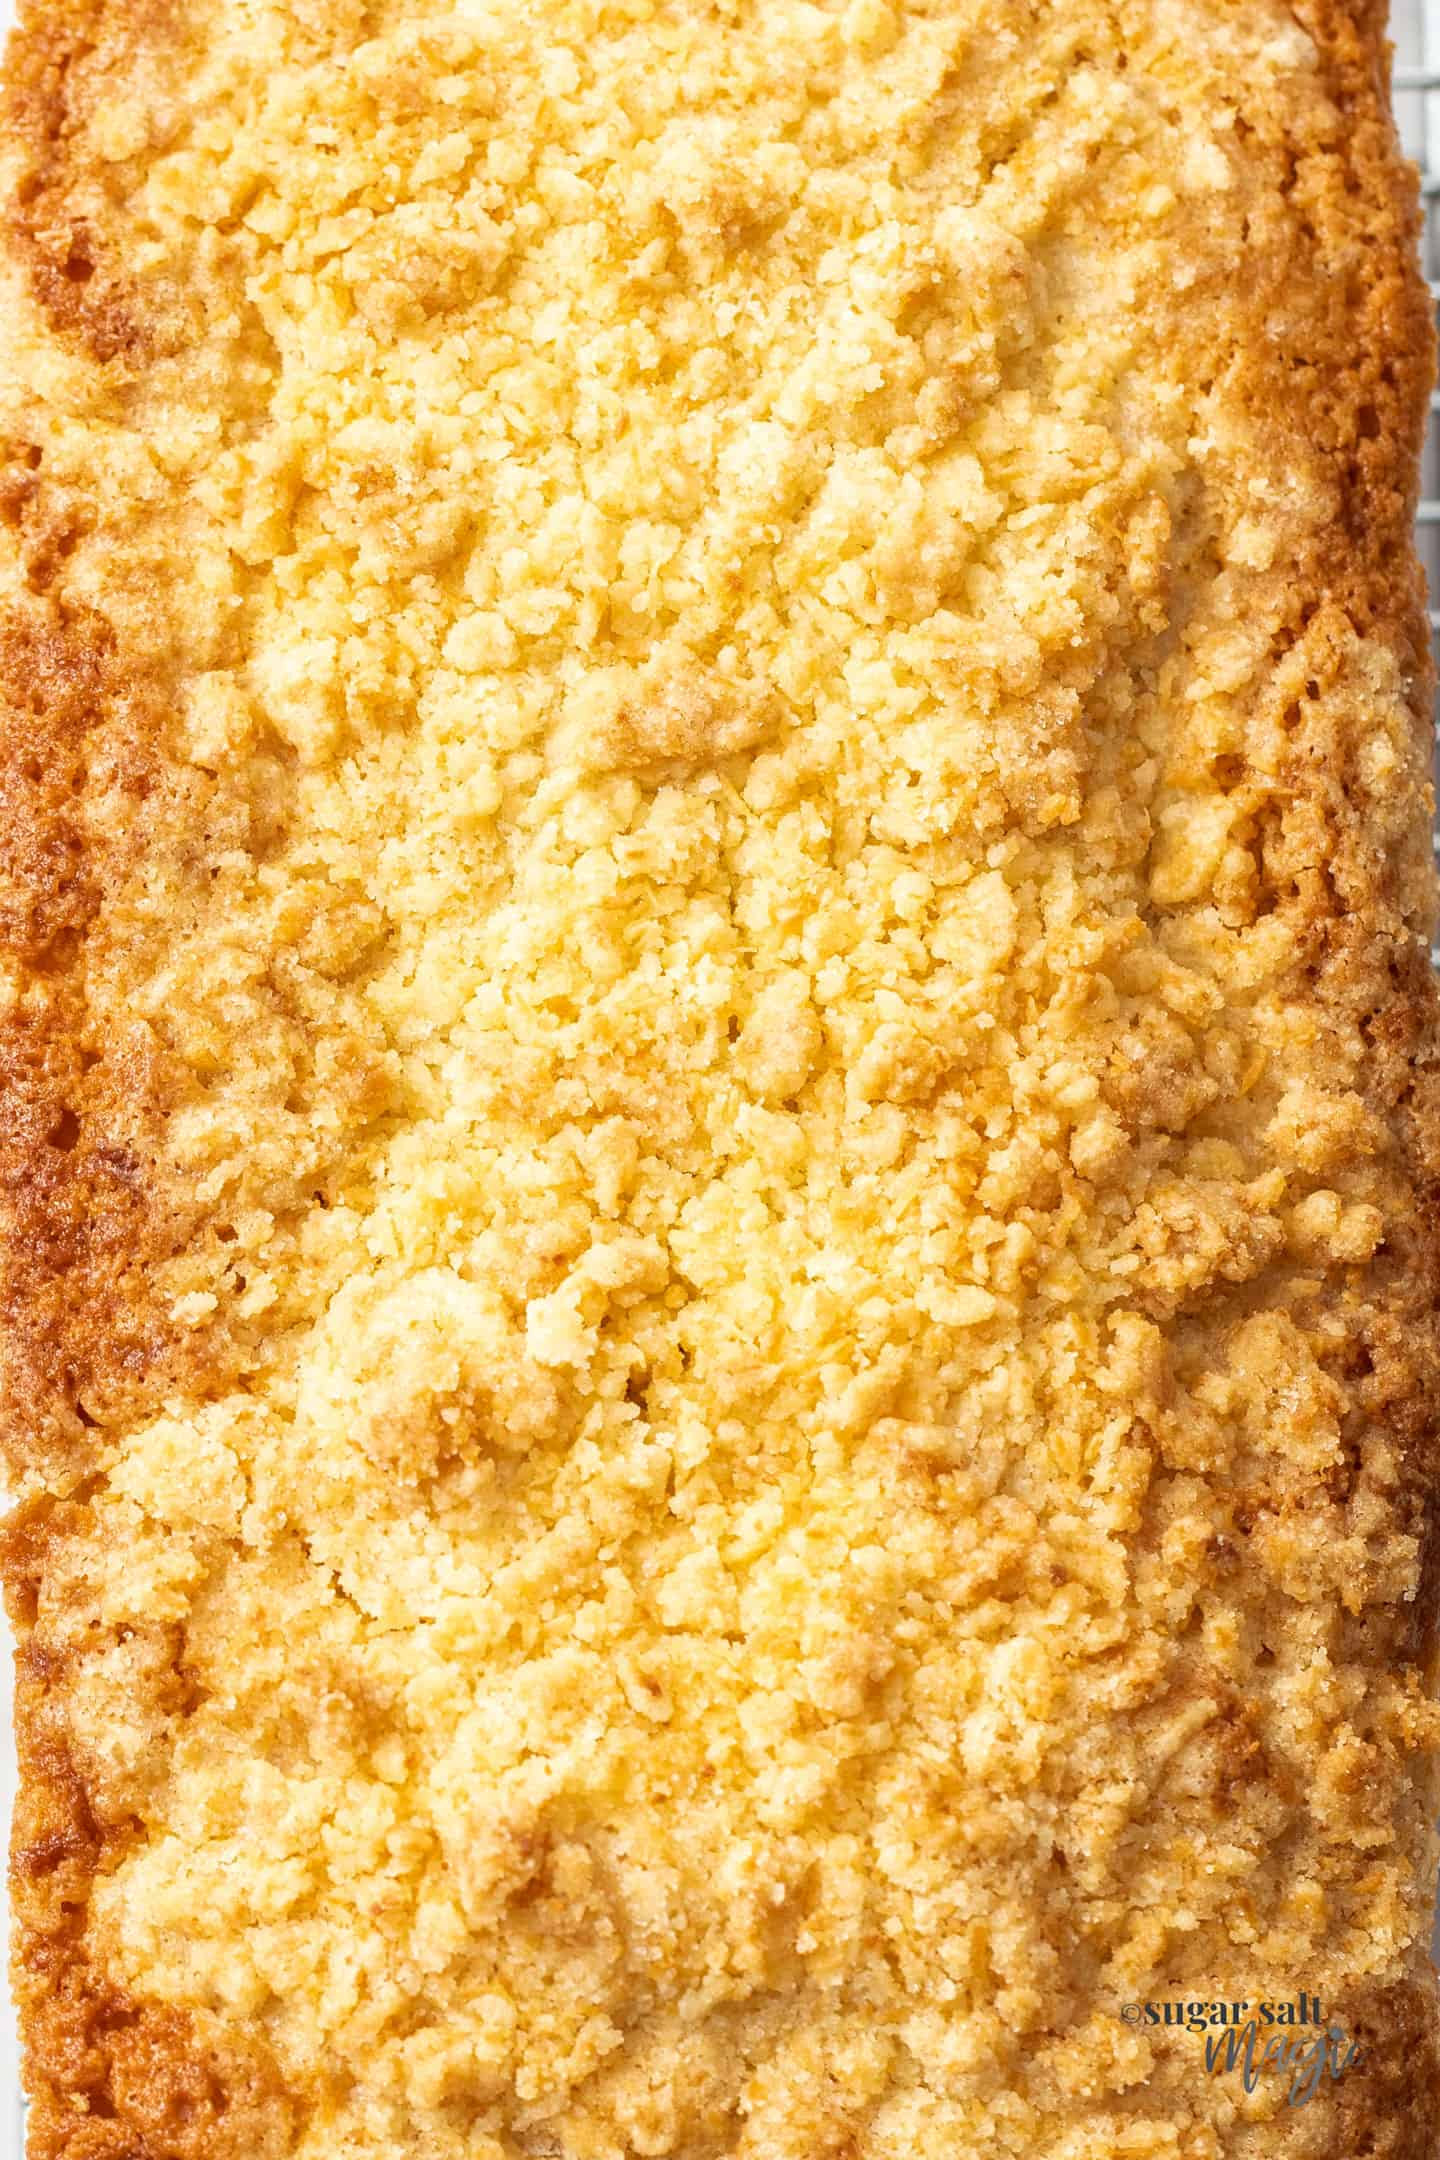 Extreme closeup of the coconut crumble topping